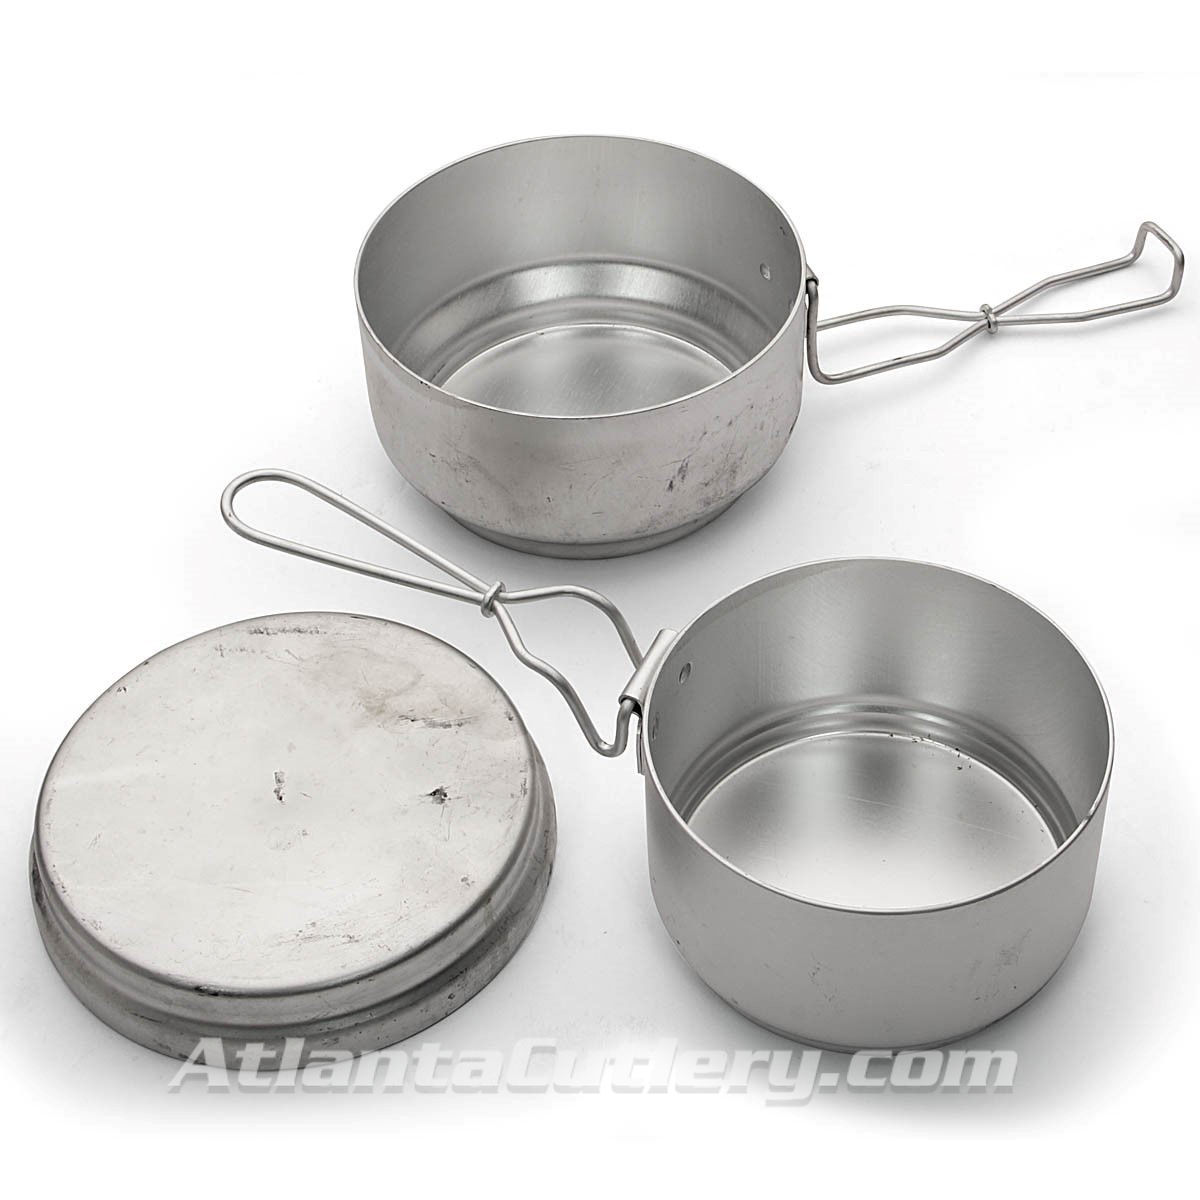 Czech Surplus Mess Kit